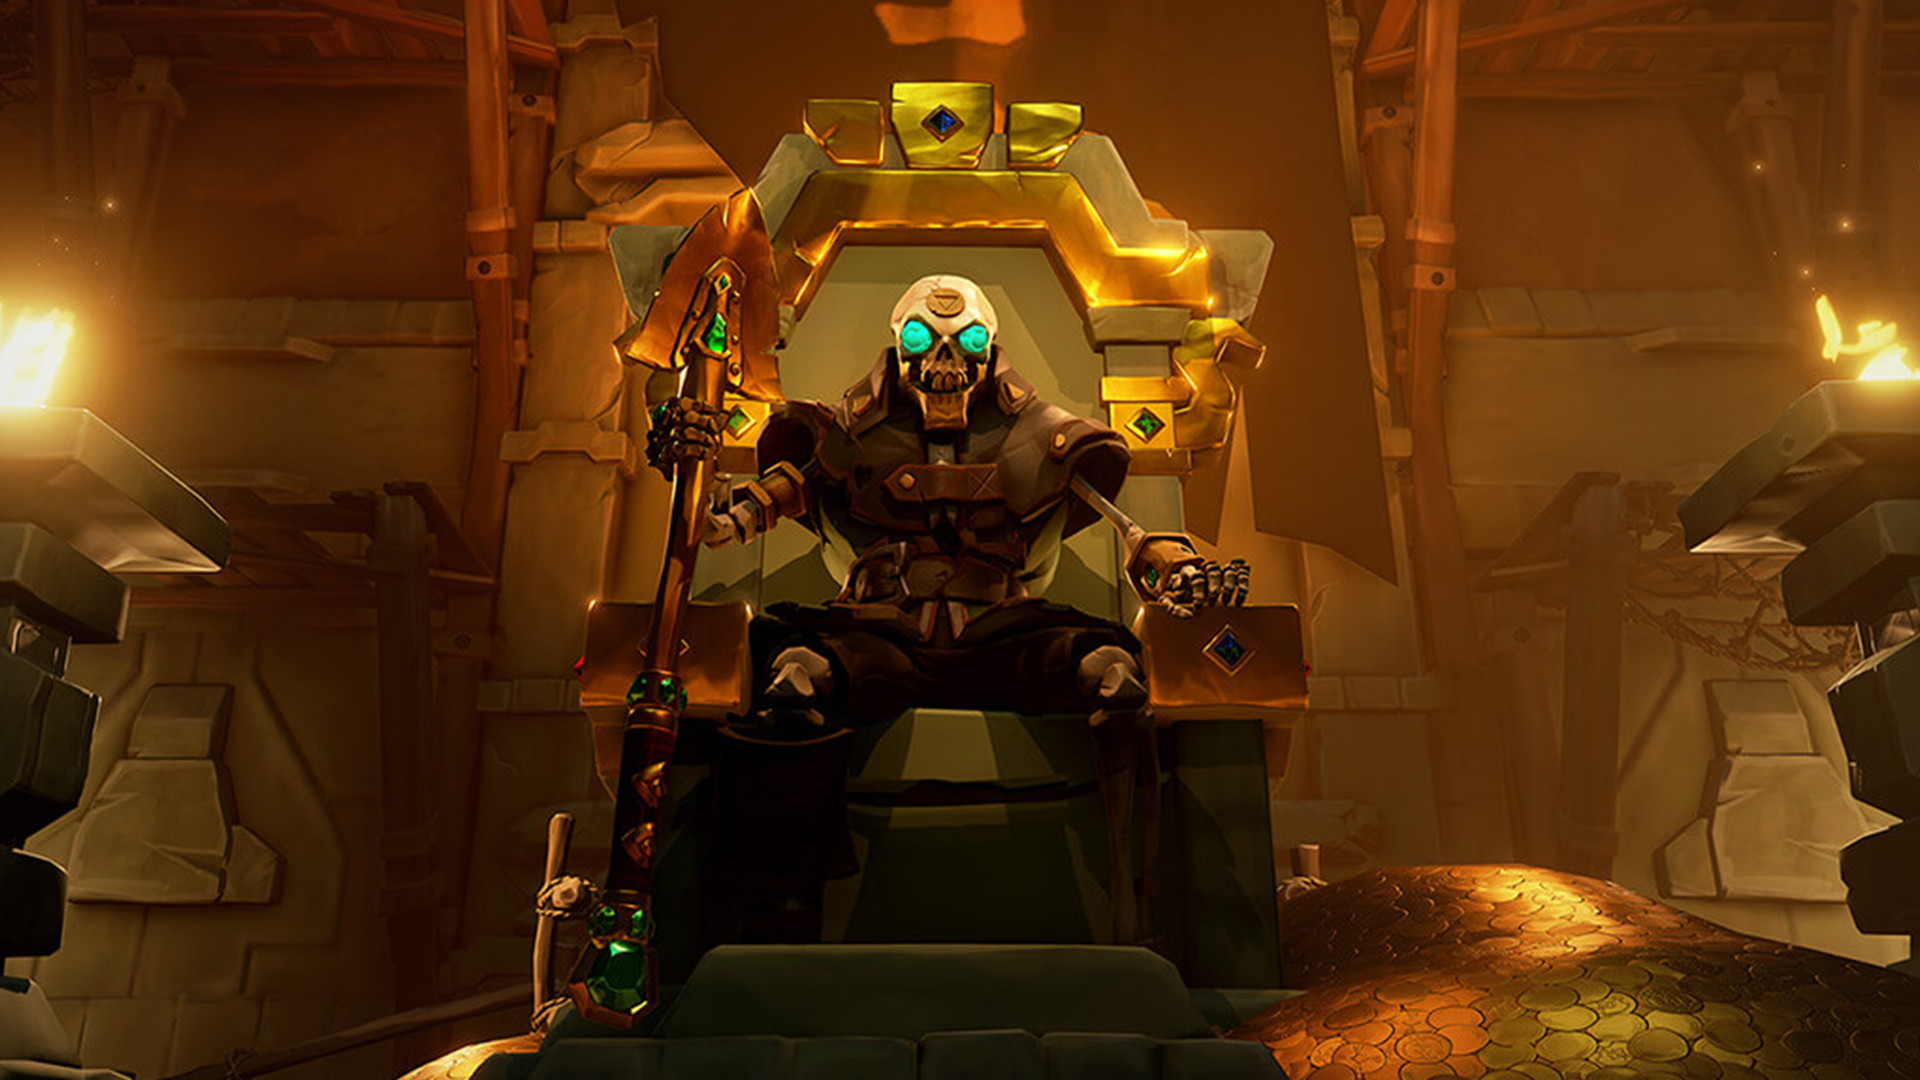 Sea of Thieves players can now report accessibility bugs in Support Requests